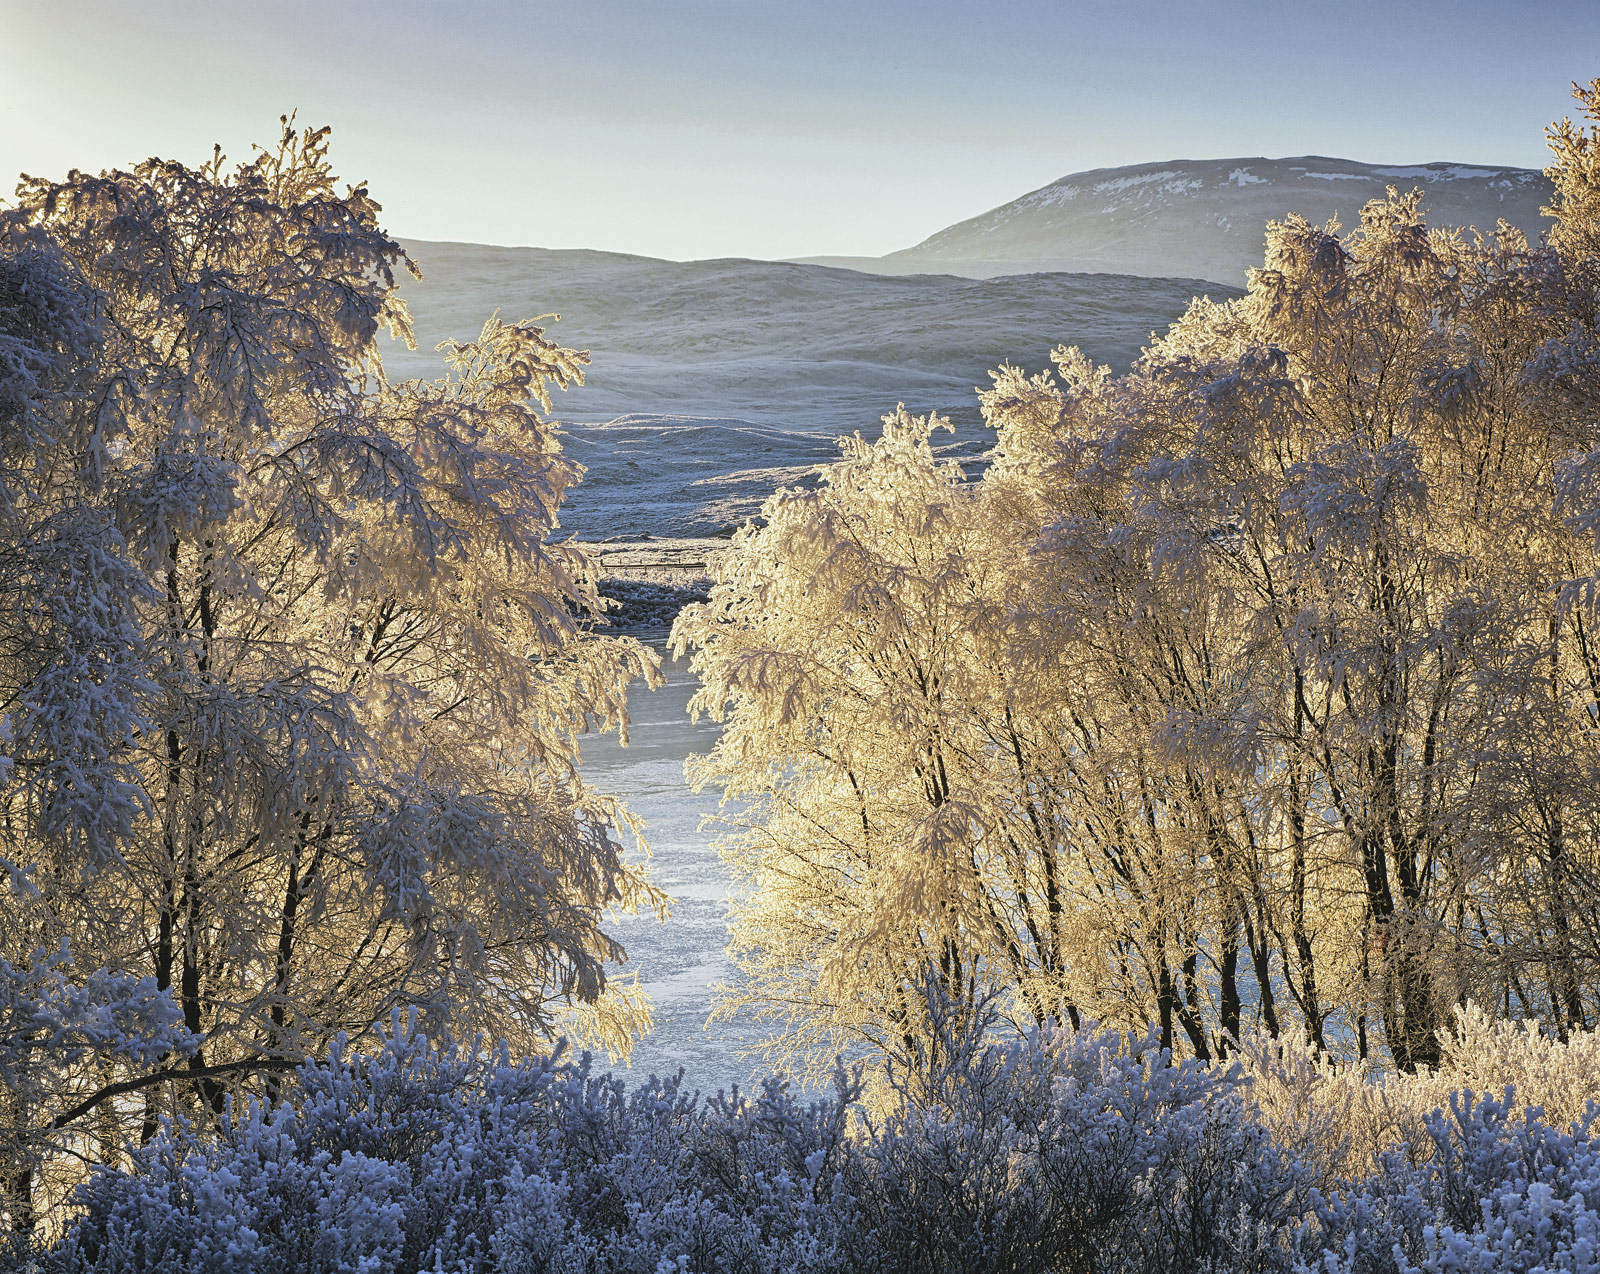 The dazzling brilliance of a fantastic and thrillingly cold winter morning at the edge of Loch Achanalt was tamed by a natural...